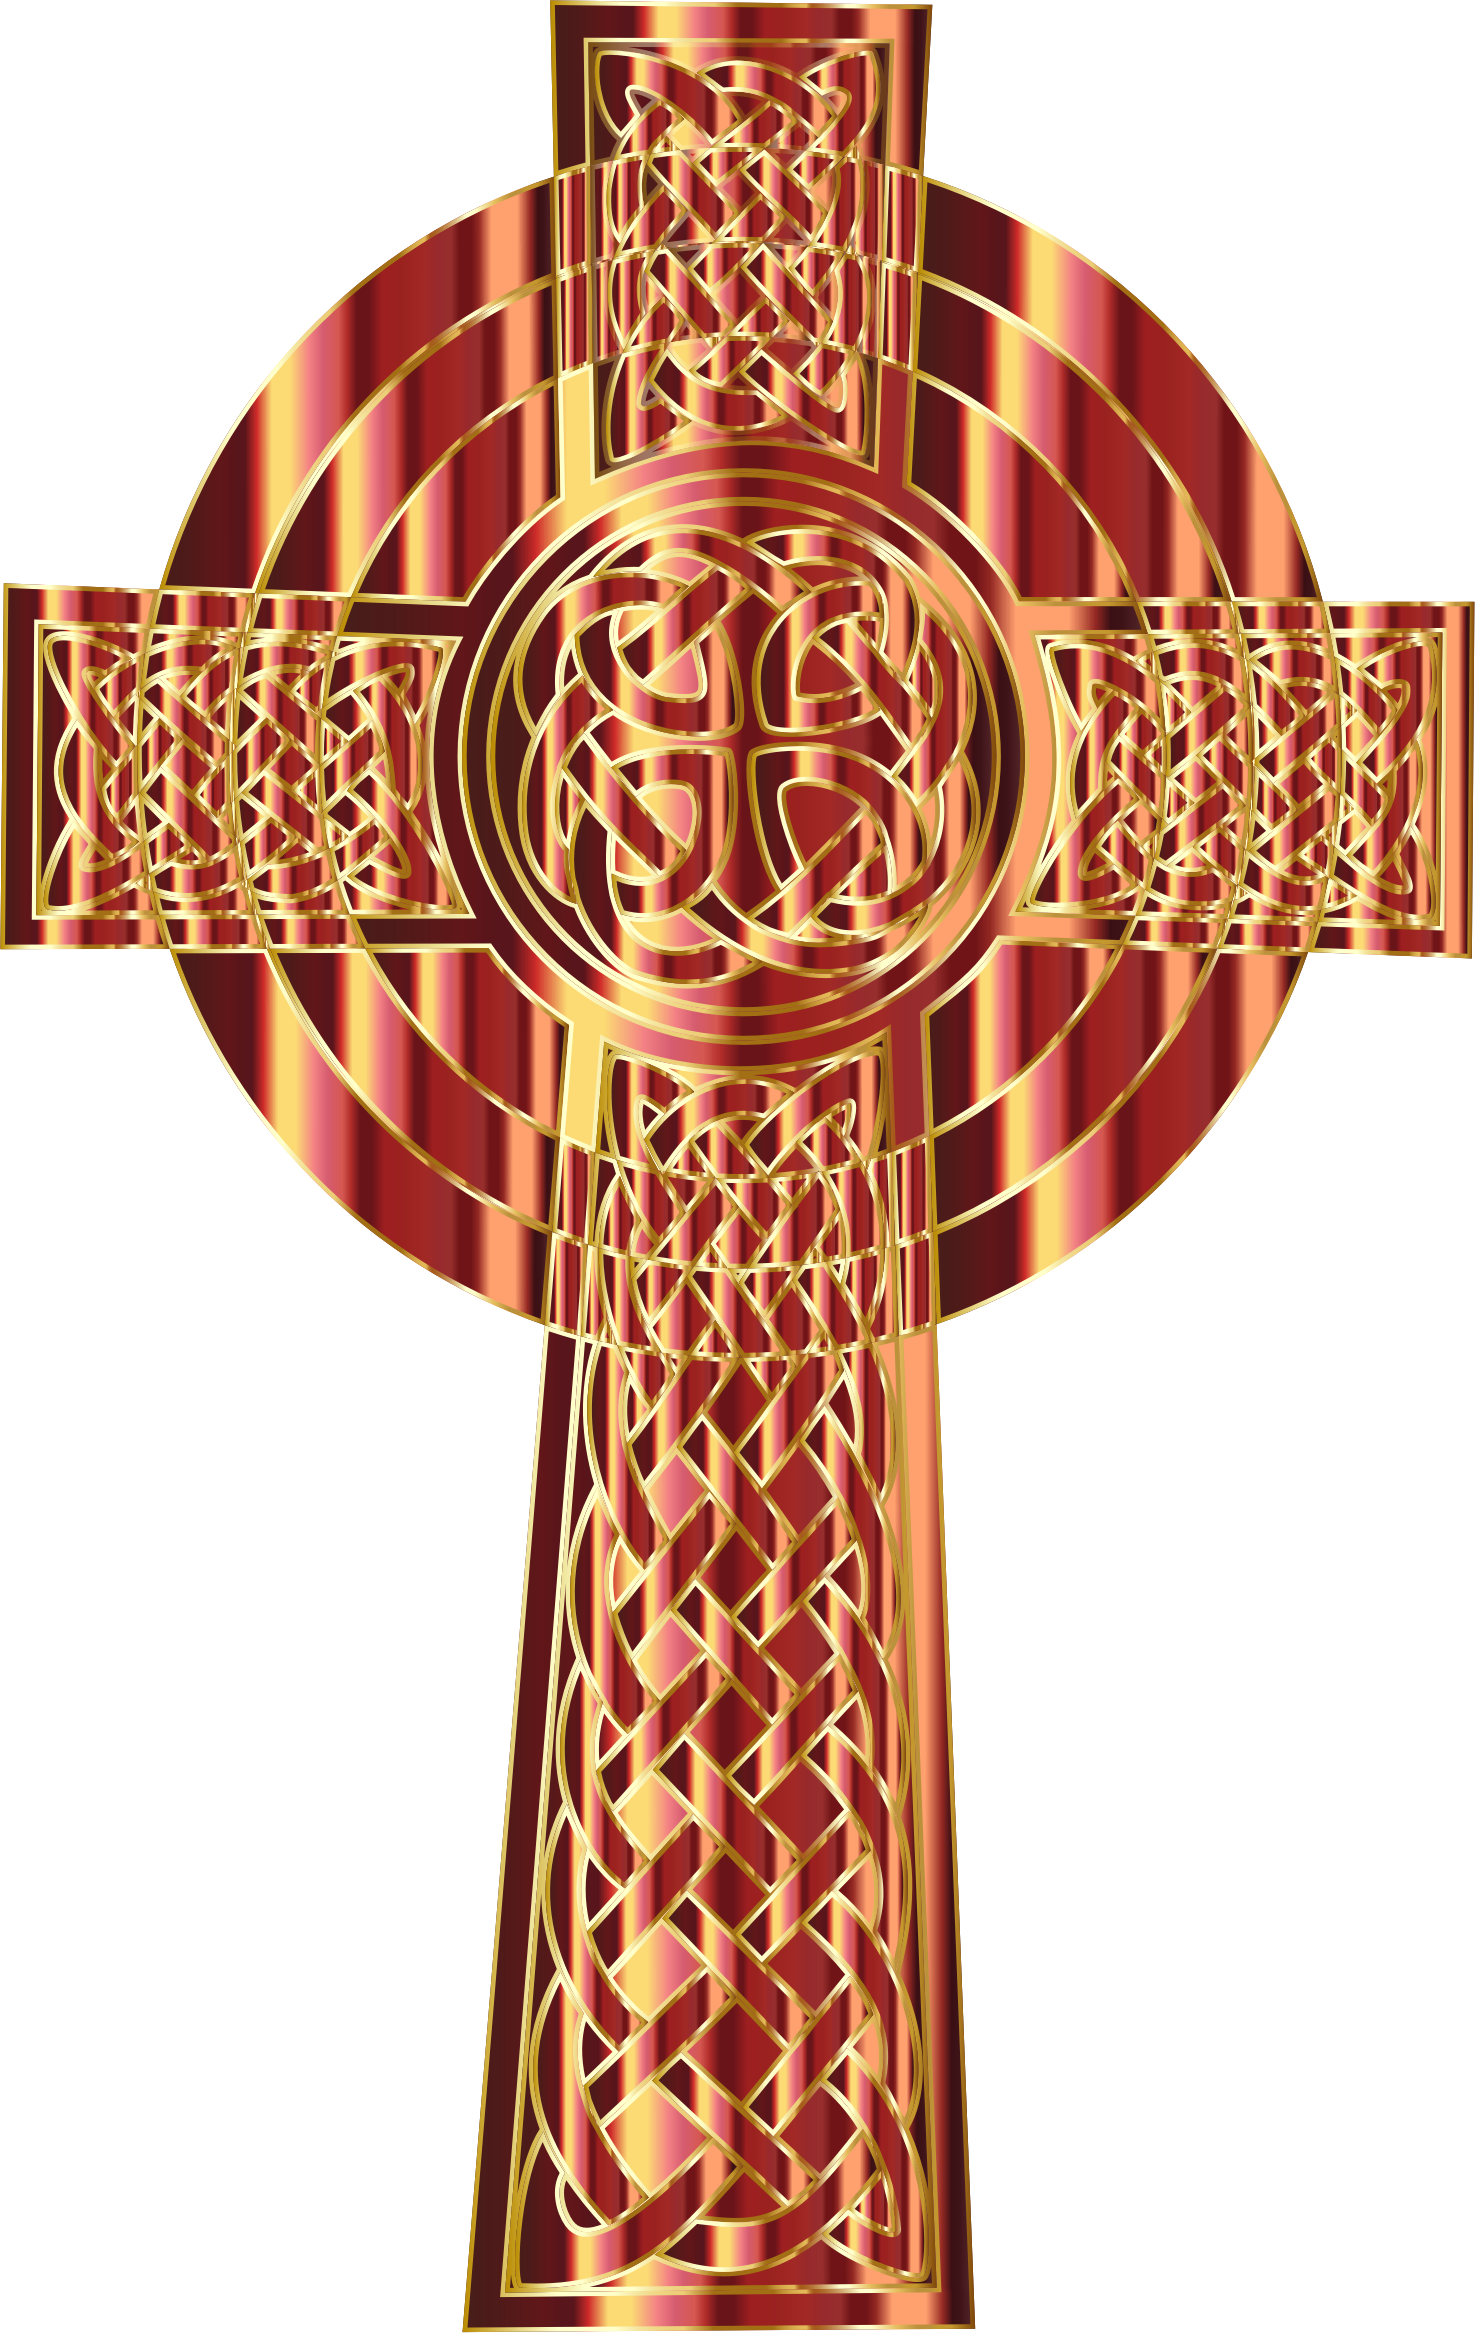 Celtic cross gold clipart graphic royalty free library Clipart - Golden Celtic Cross 3 graphic royalty free library